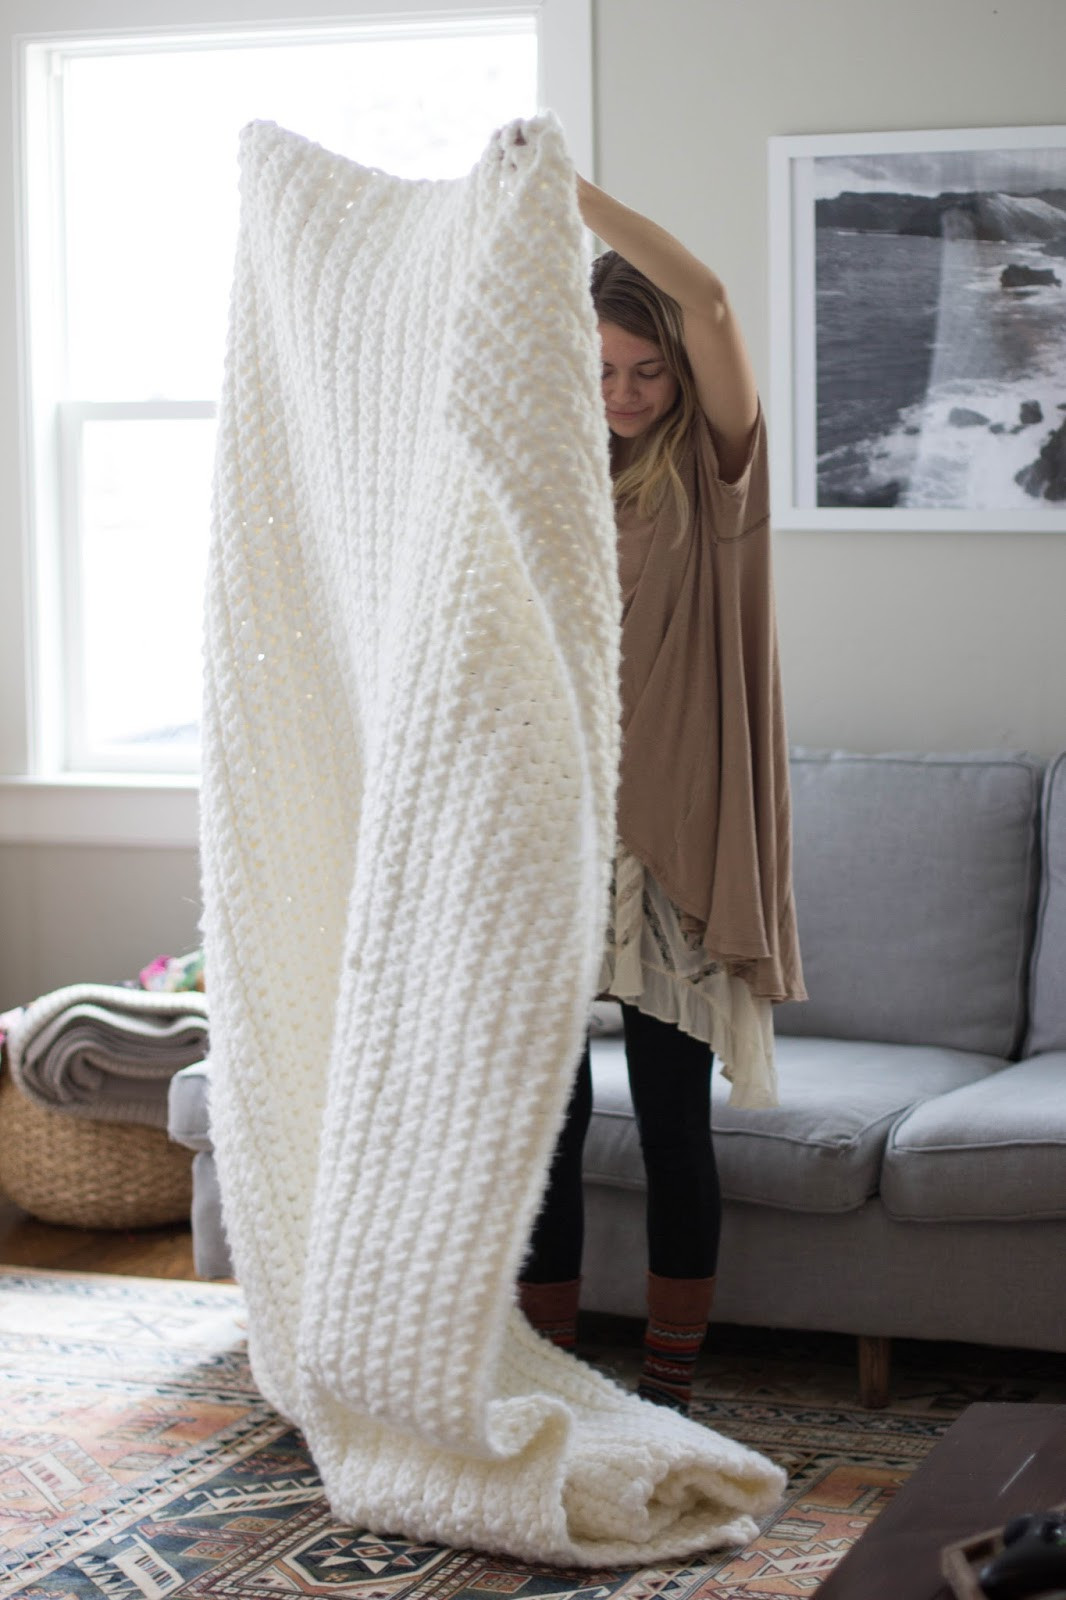 Big Crochet Blanket Inspirational [free Pattern] Outrageously Cozy Chunky Blanket to Snuggle Of Adorable 43 Photos Big Crochet Blanket